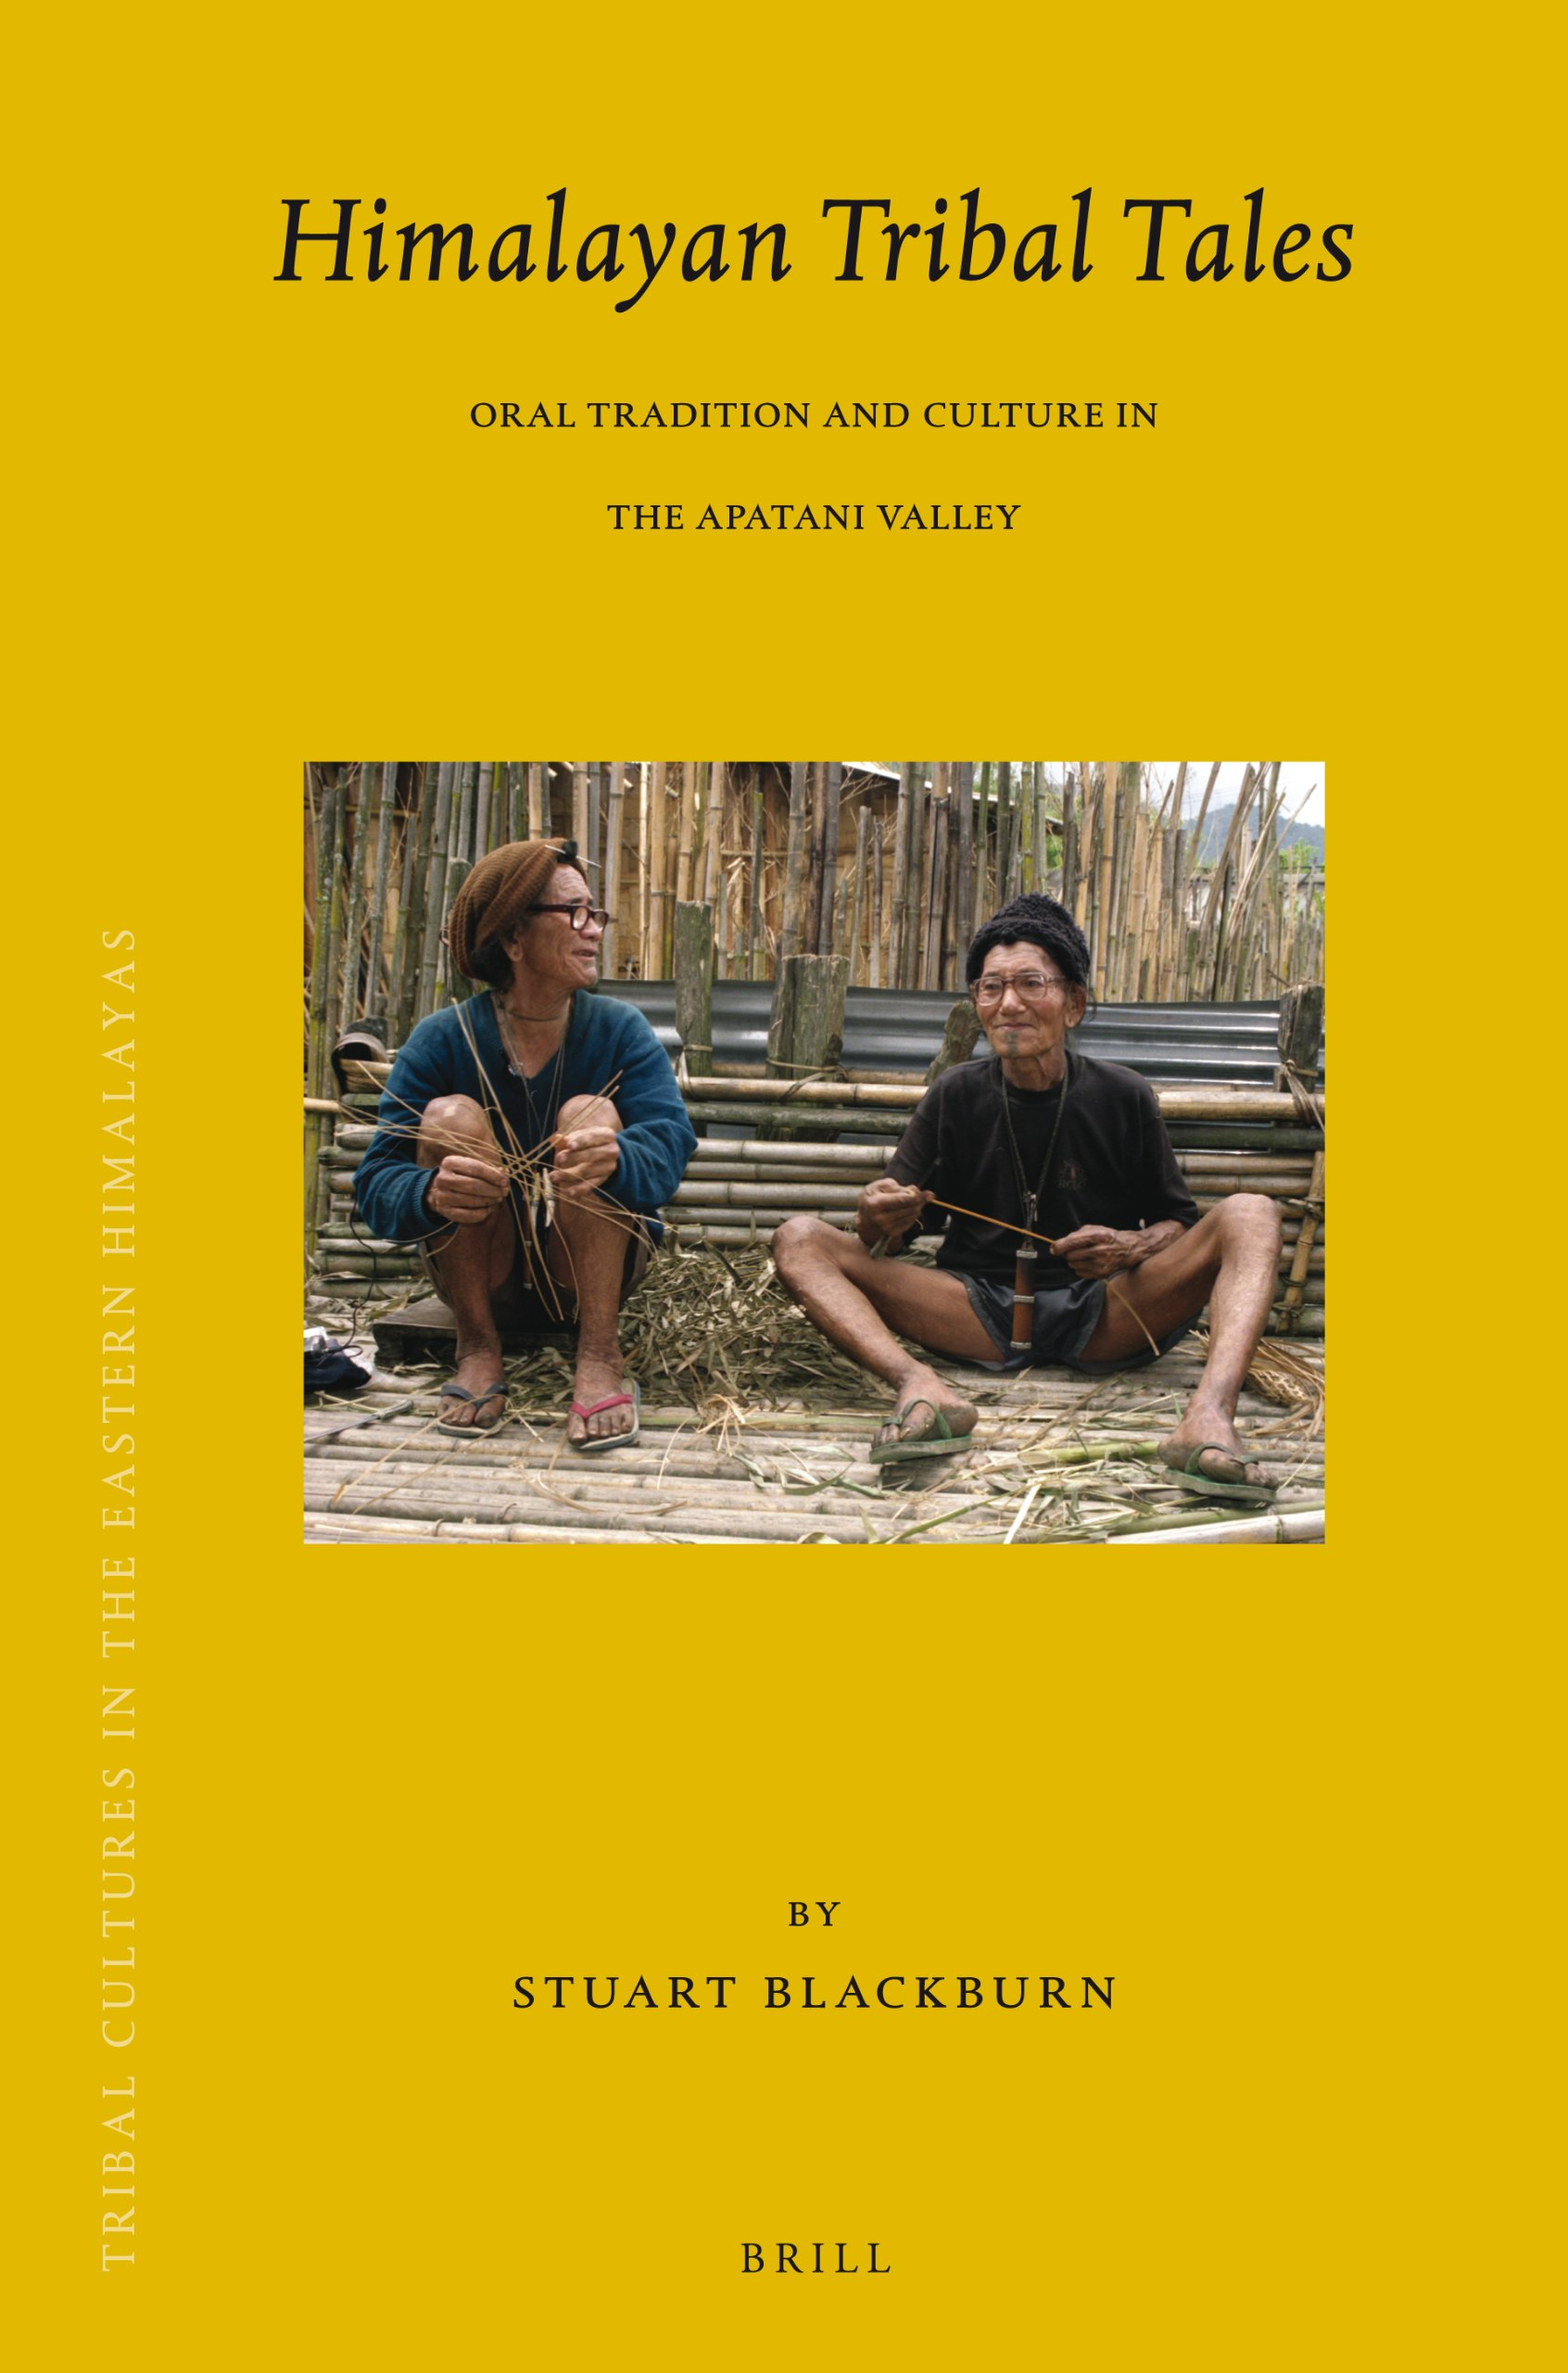 Himalayan Tribal Tales: Oral Tradition and Culture in the Apatani Valley (Brill's Tibetan Studies Library) pdf